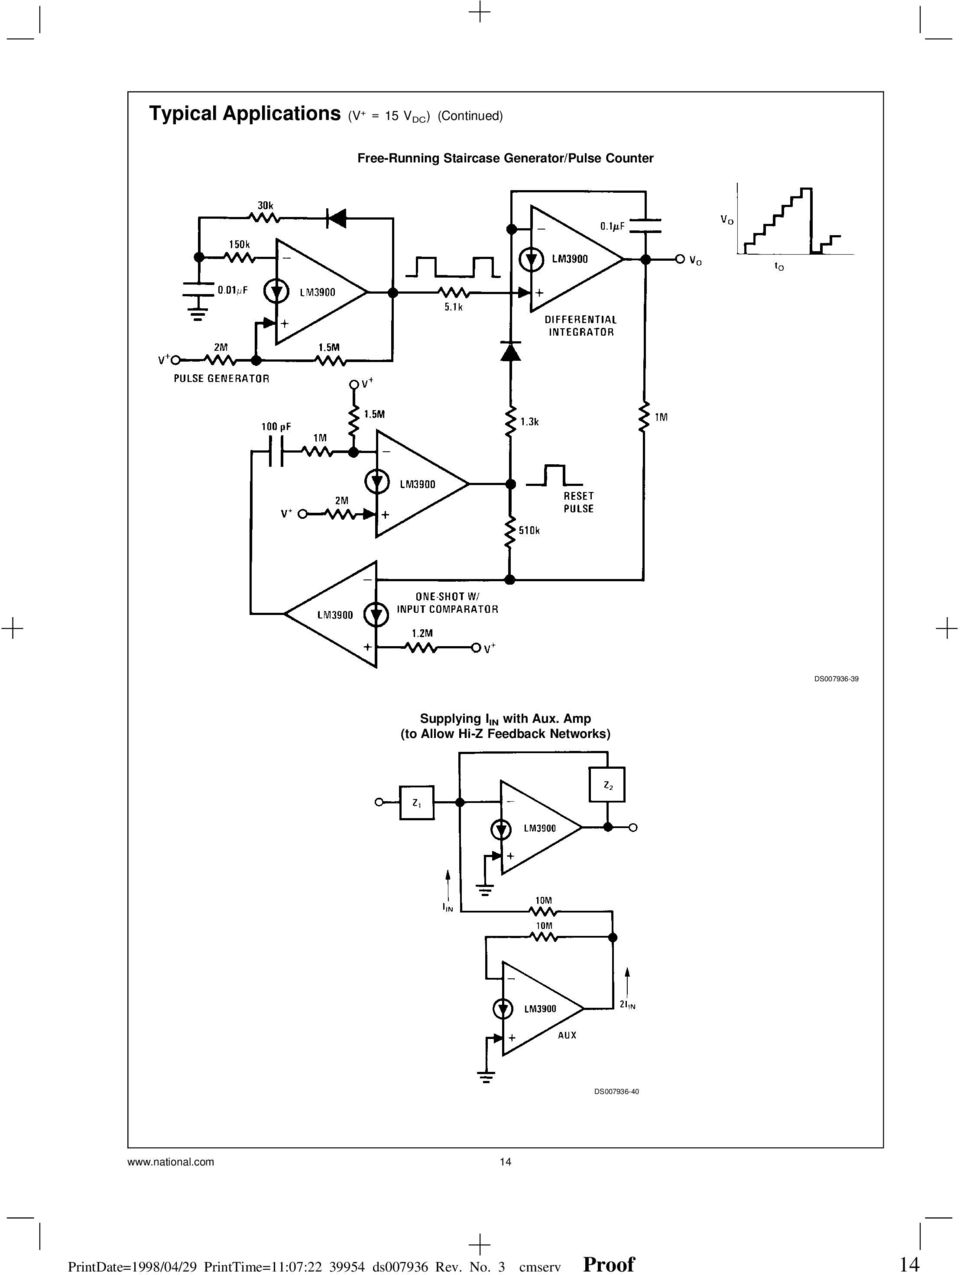 Lm2900lm3301lm3900 Lm2900 Lm3900 Lm3301 Quad Amplifiers Tone Control Circuit Diagrams And Using Audio Amplifier Ic Tl082 Amp To Allow Hi Z Feedback Networks Ds007936 40